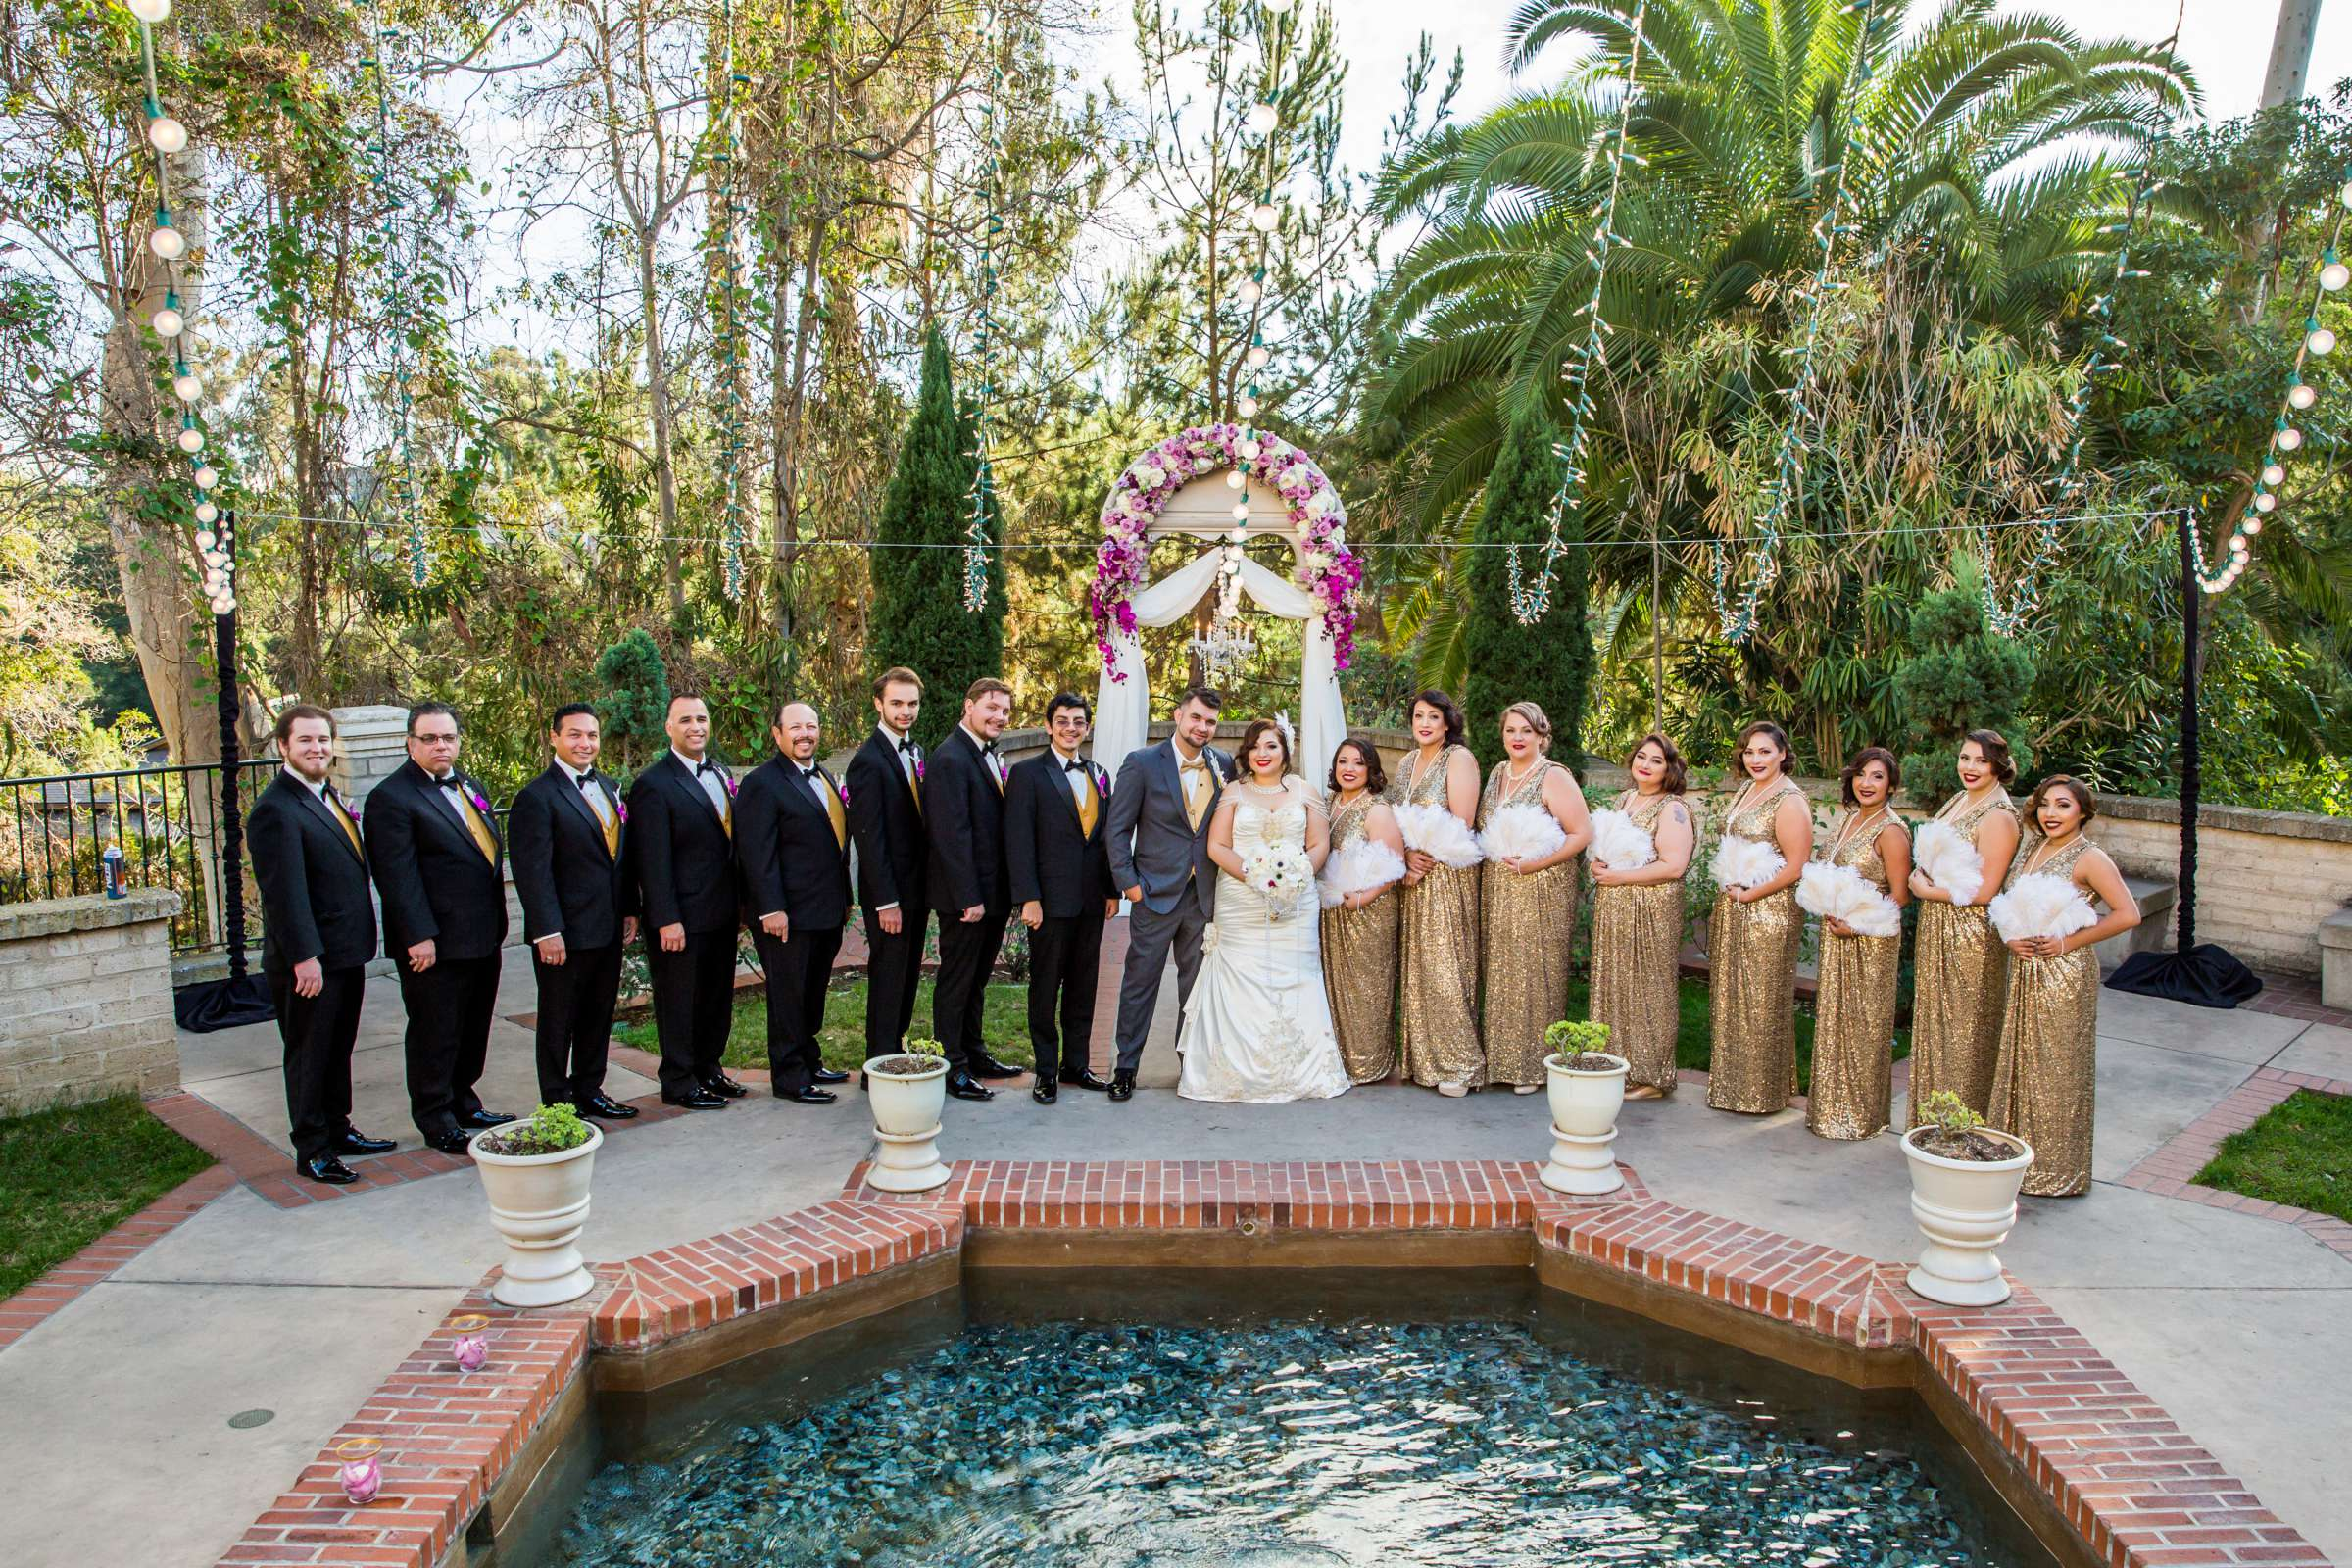 The Prado Wedding coordinated by Breezy Day Weddings, Aalis and Michael Wedding Photo #71 by True Photography